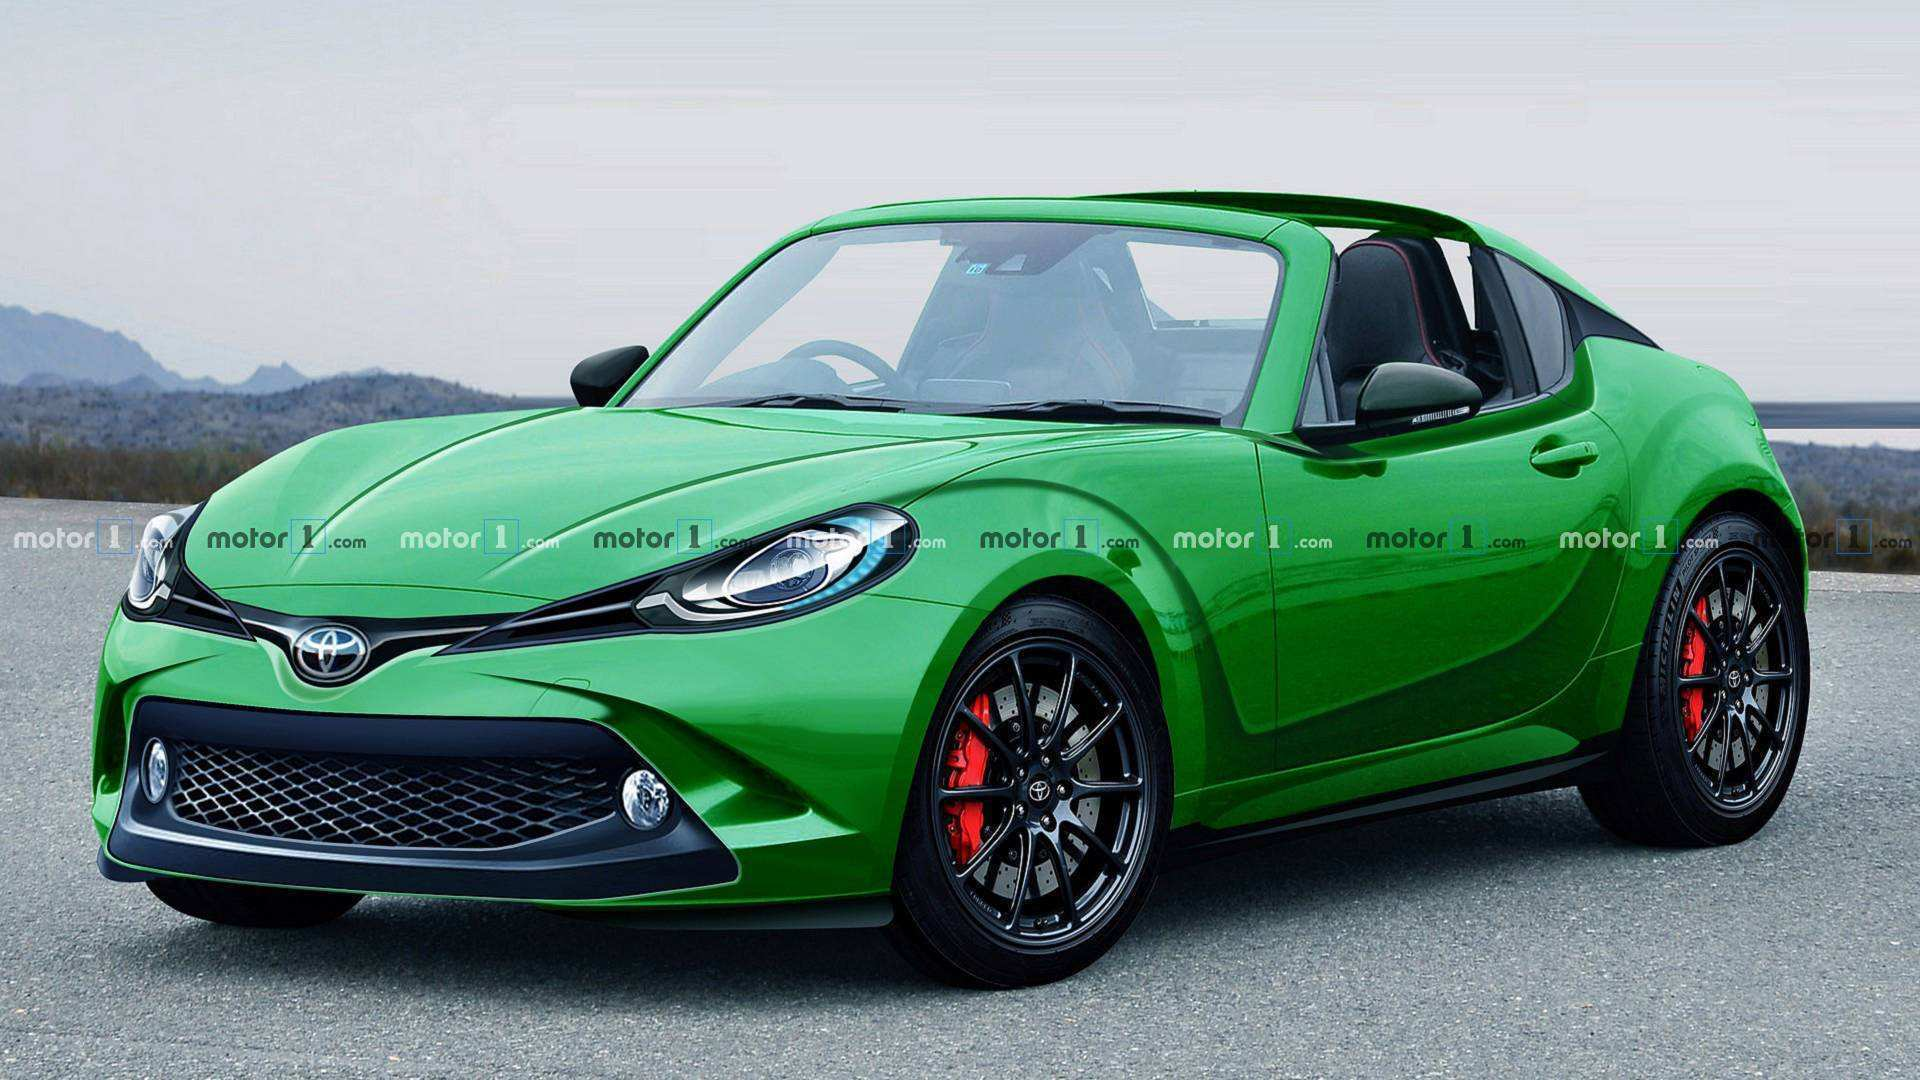 98 Great 2020 Toyota Mr2 Exterior by 2020 Toyota Mr2